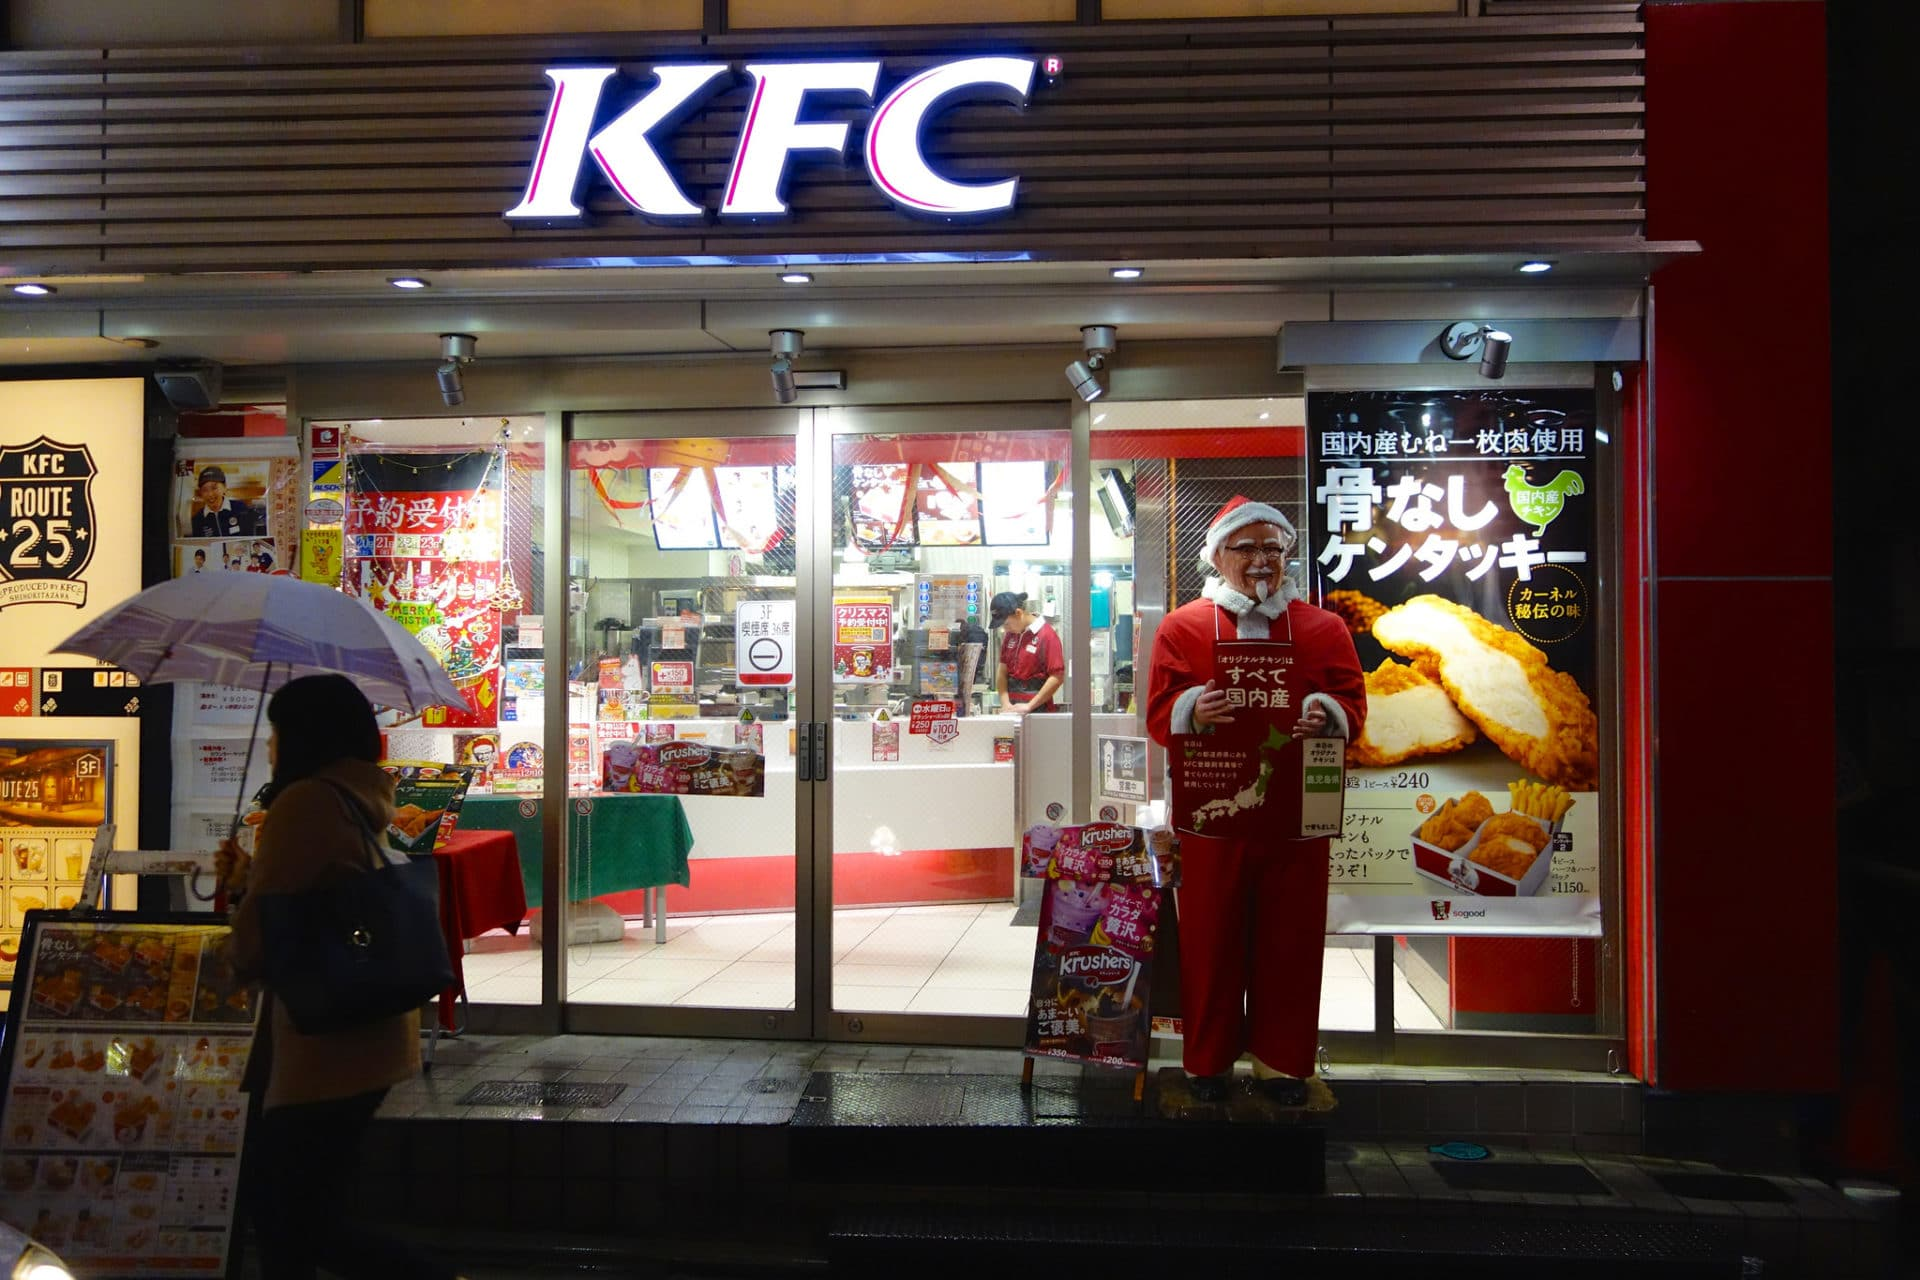 Weihnachten in Japan - KFC